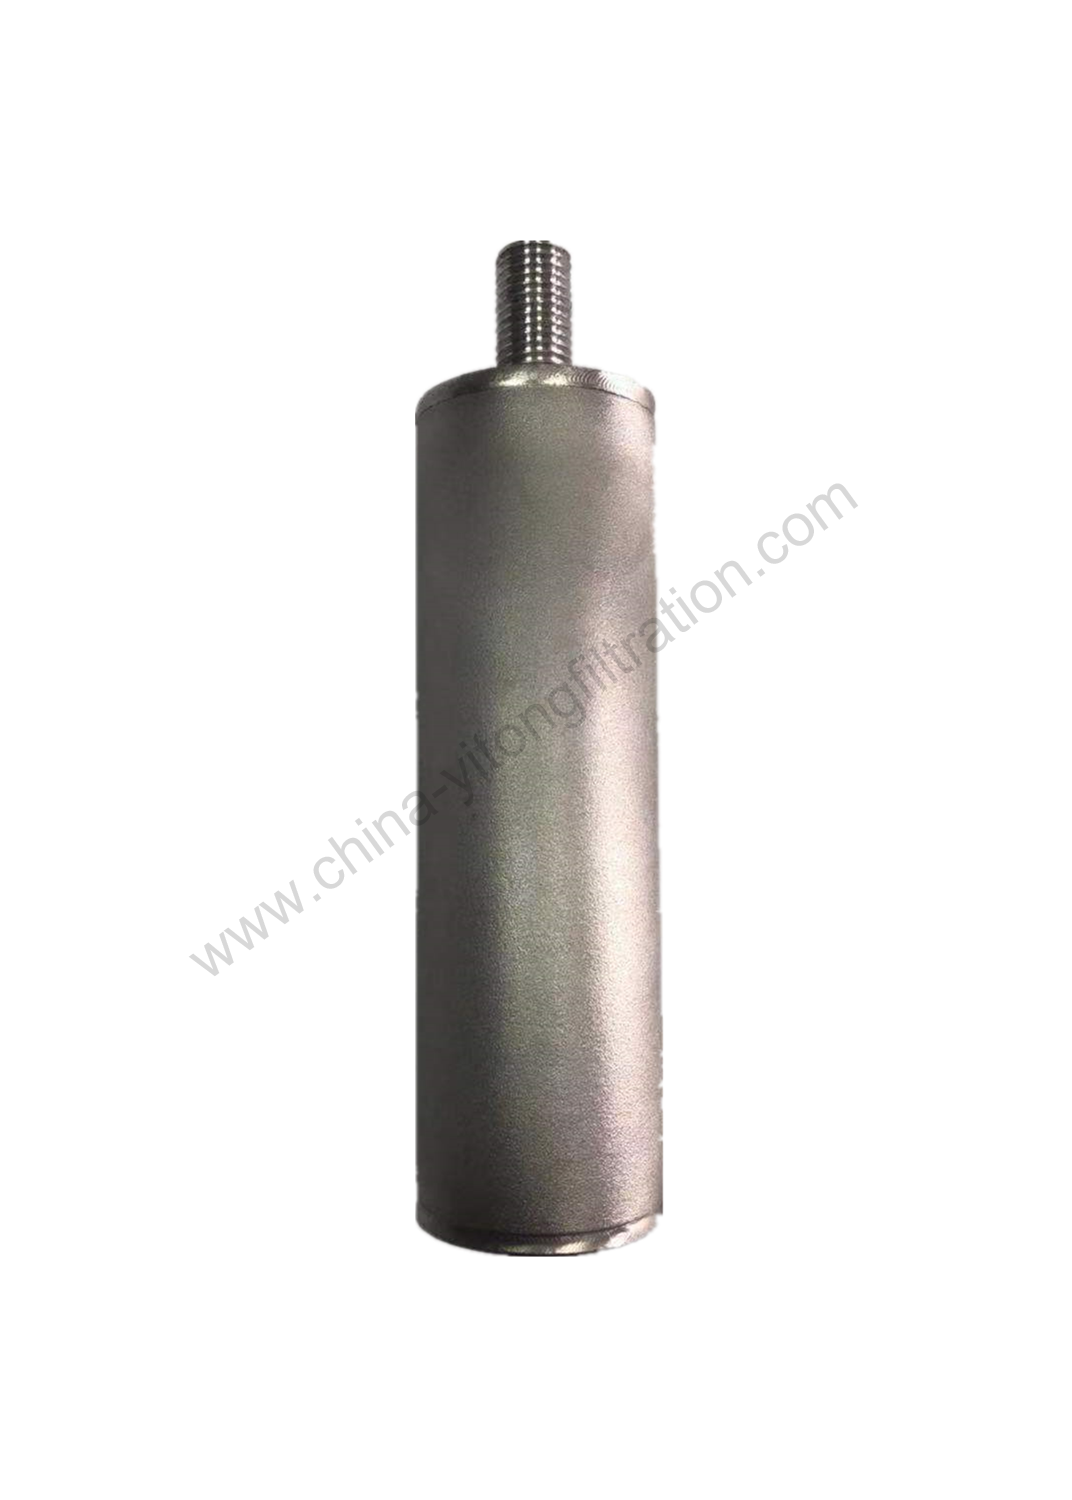 Stainless Steel Powder Sintered Filter Cartridge